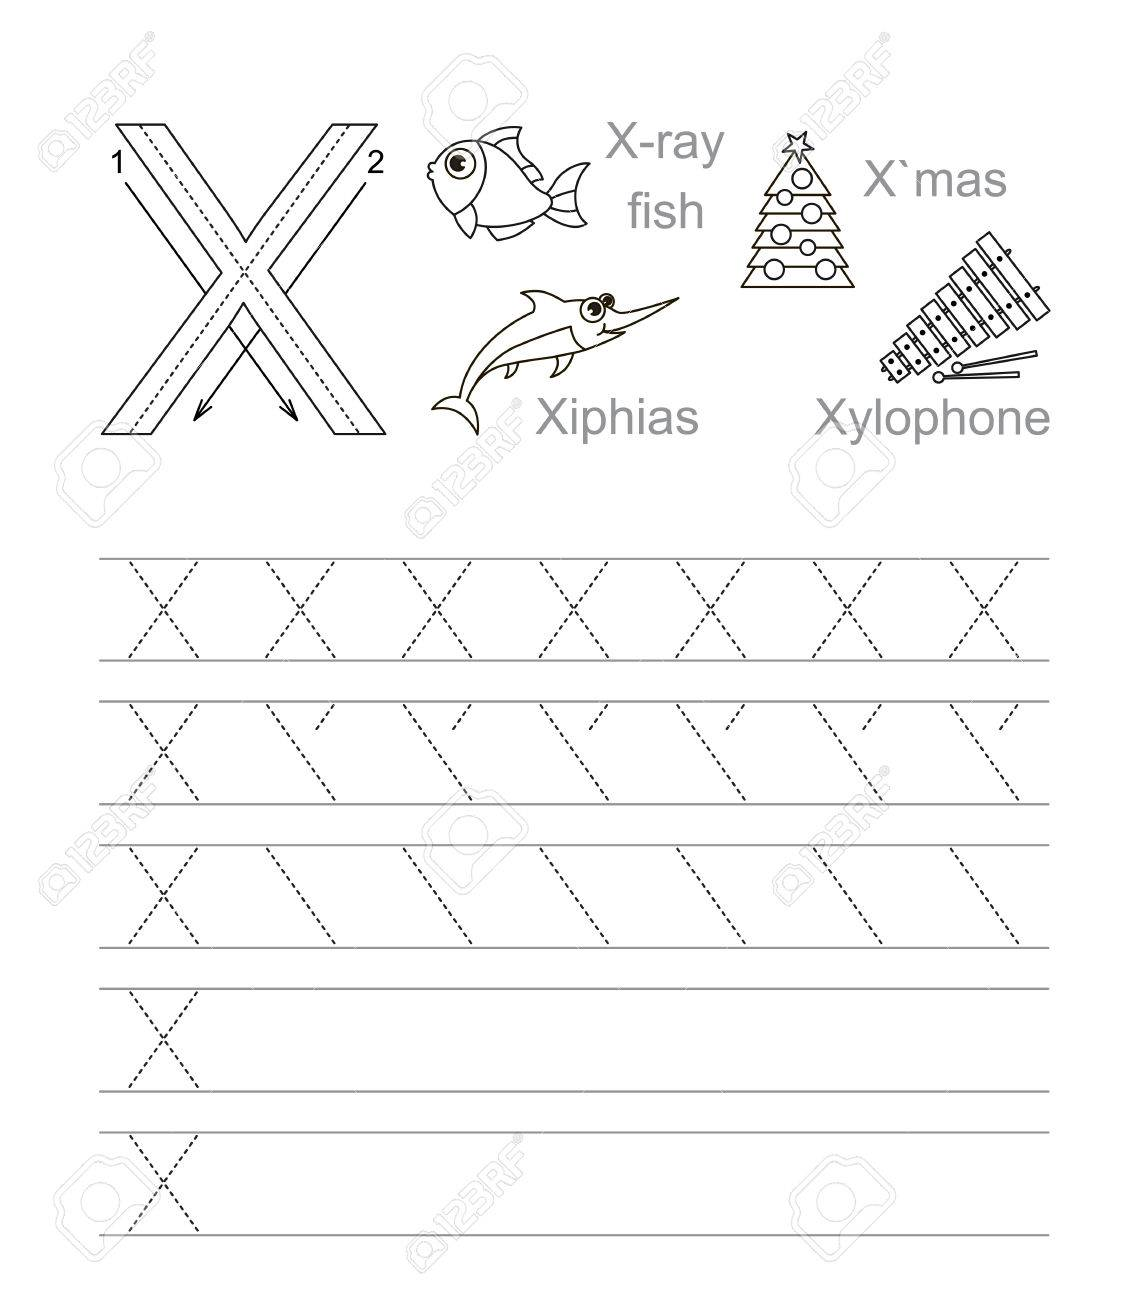 Worksheet Learn Handwriting vector exercise illustrated alphabet learn handwriting tracing worksheet for letter x page to be colored